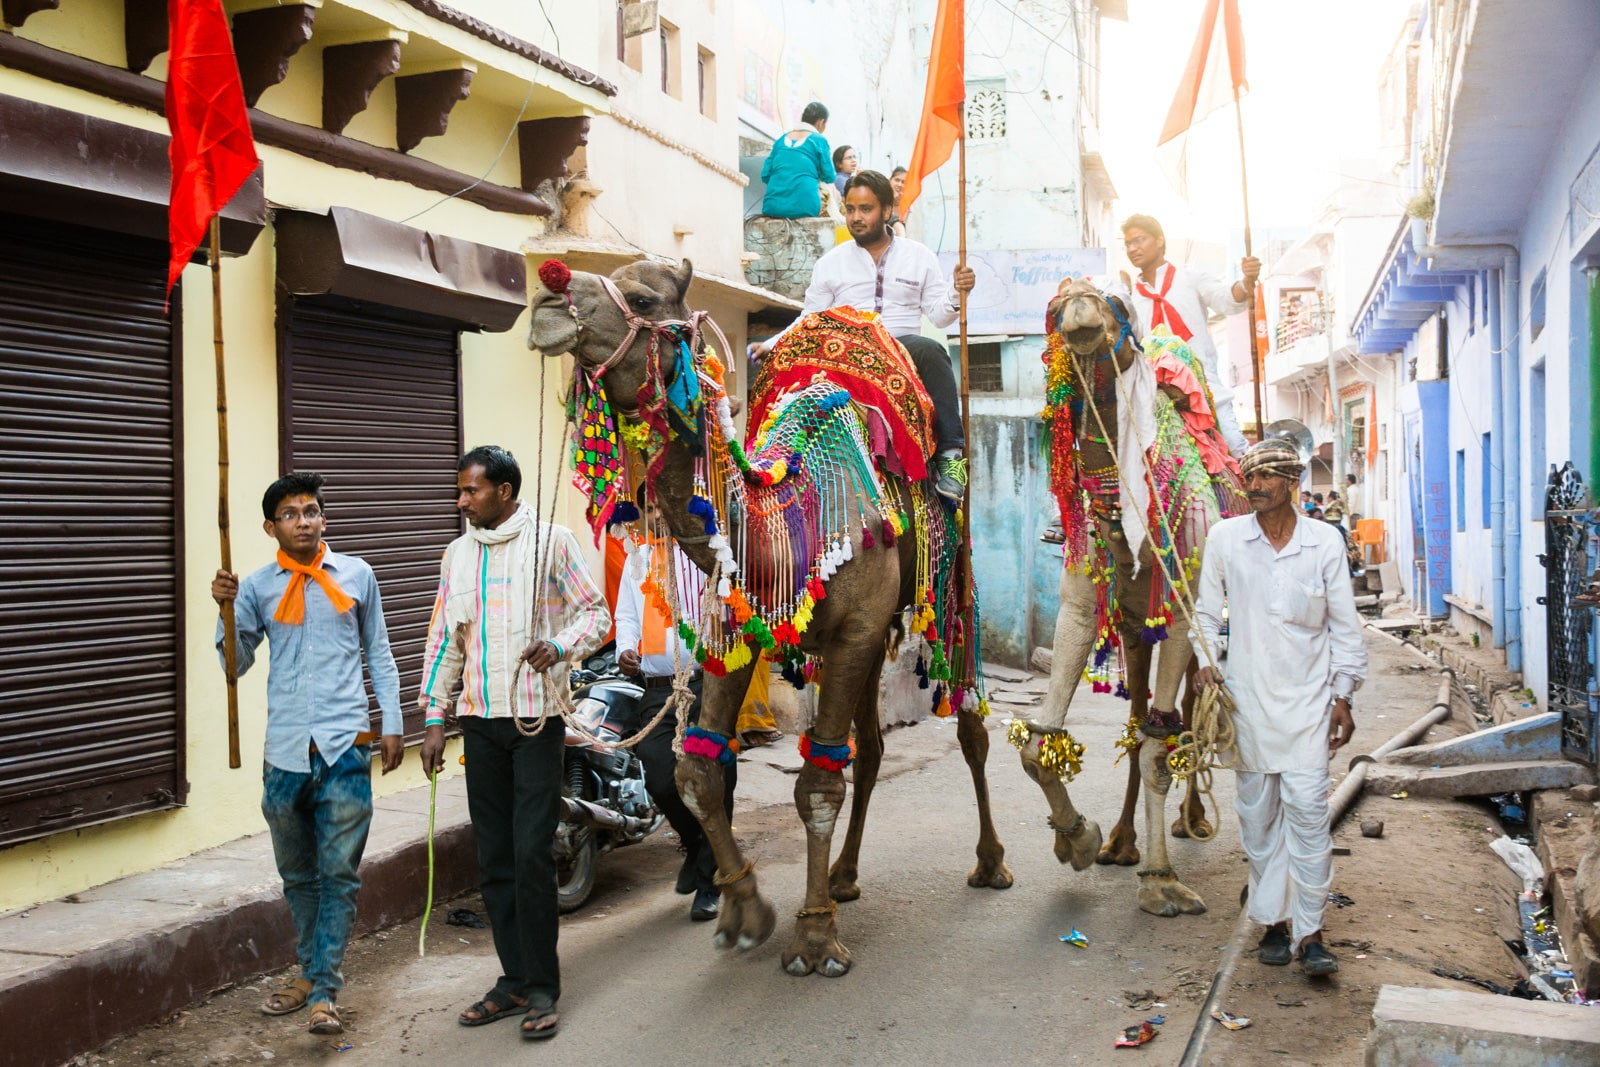 Why we love India - Camels during a parade for Shiva's birthday in Bundi, Rajasthan state, India - Lost With Purpose travel blog